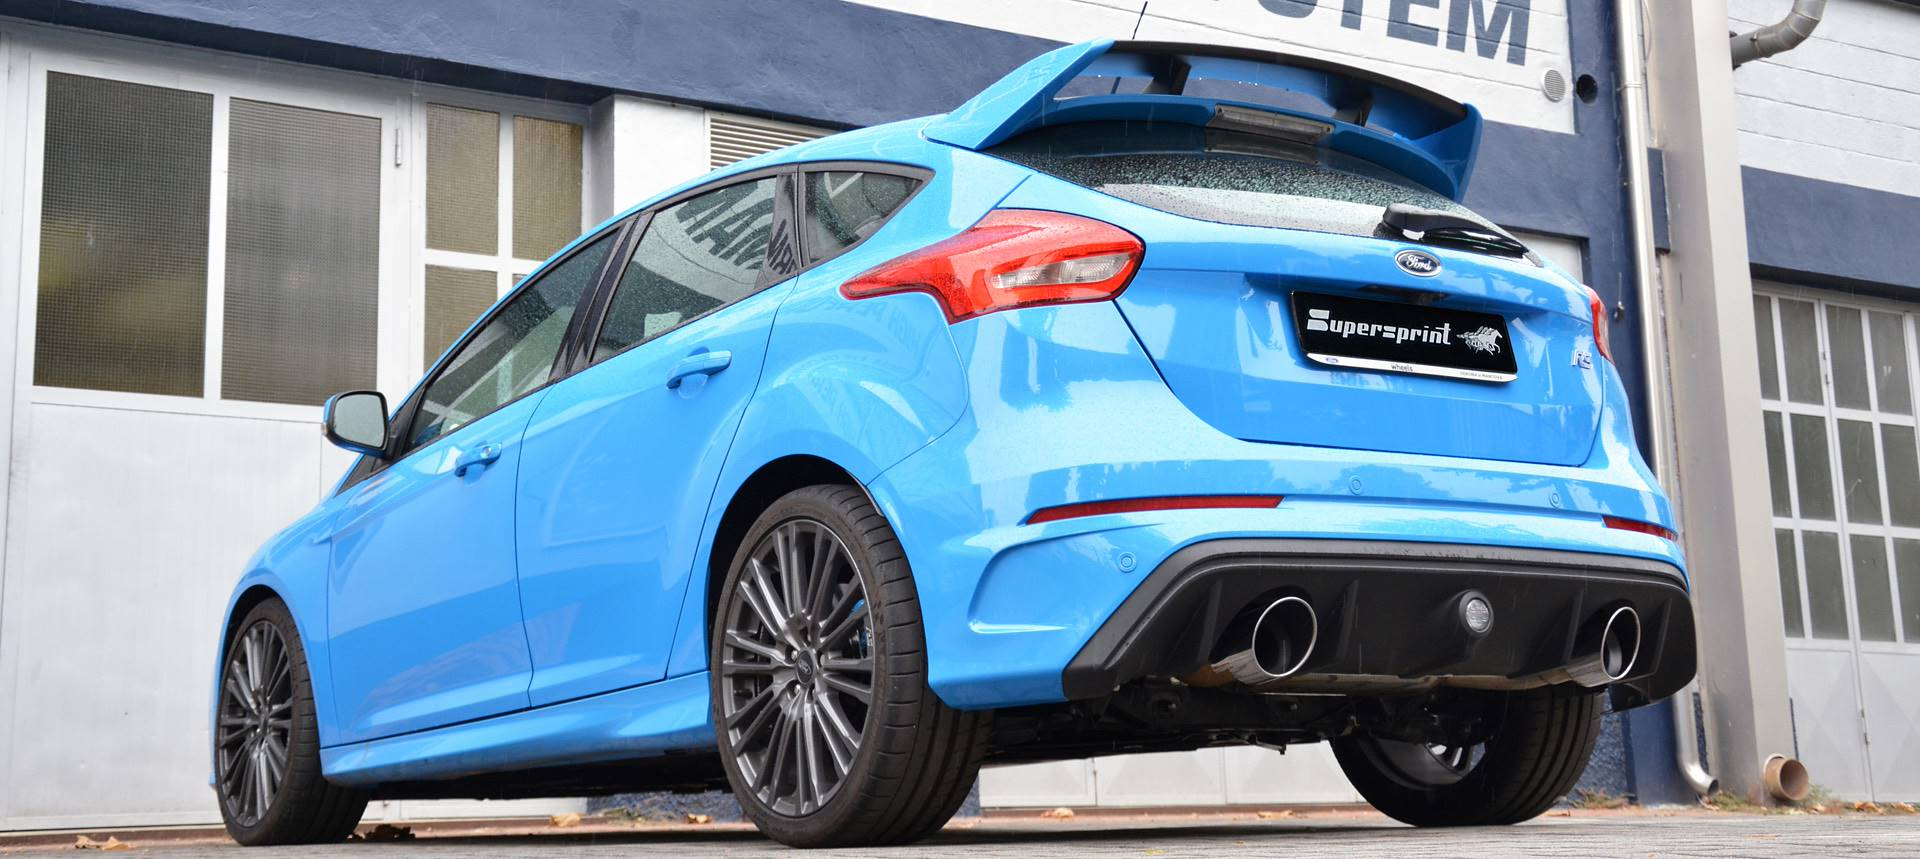 FORD FOCUS RS 2.3i Turbo 4x4 (350 Hp) sound con impianto di scarico completo Supersprint con valvola